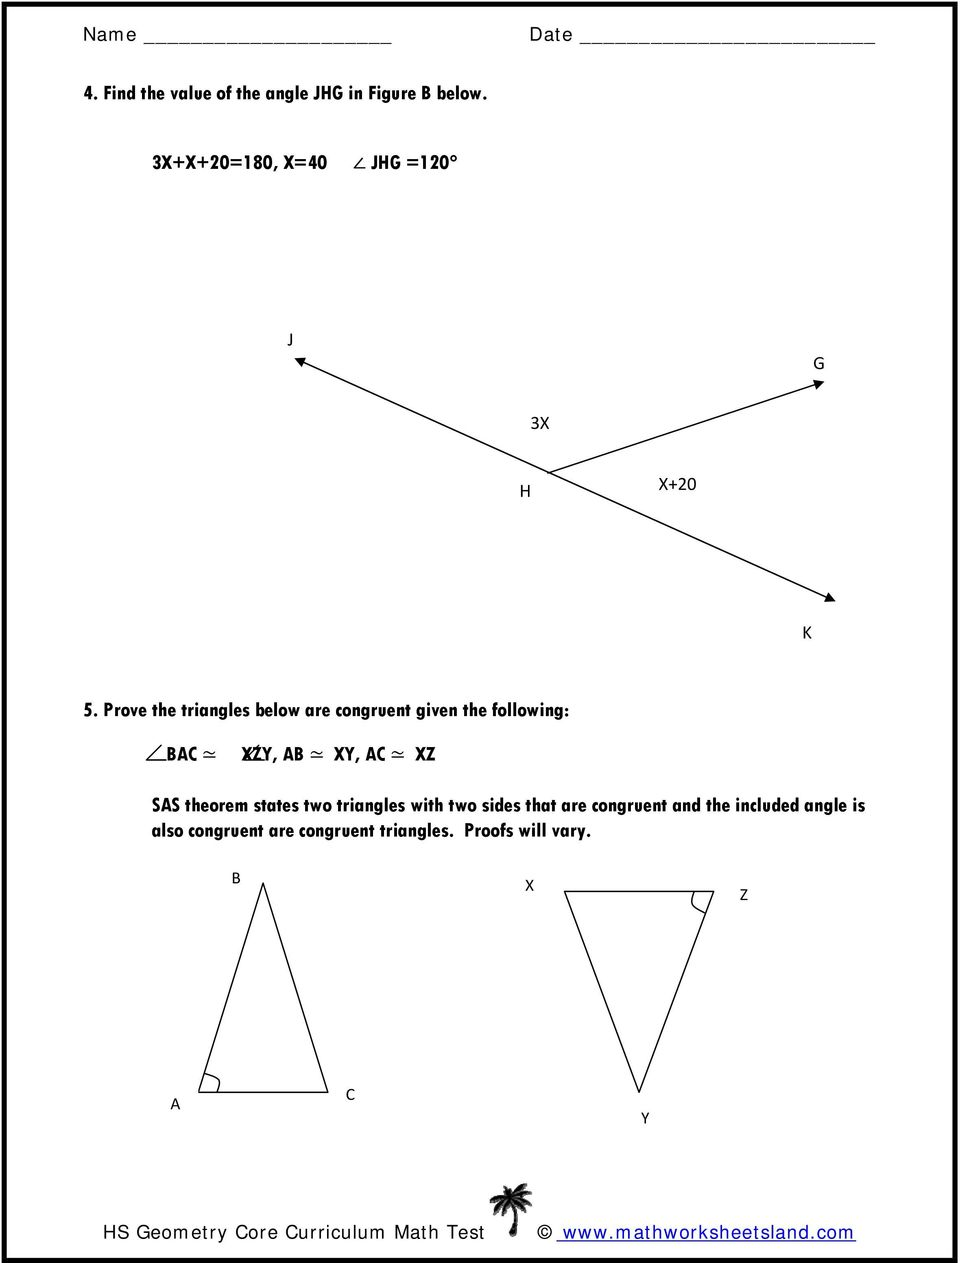 Prove the triangles below are congruent given the following: BAC XZY, AB XY, AC XZ SAS